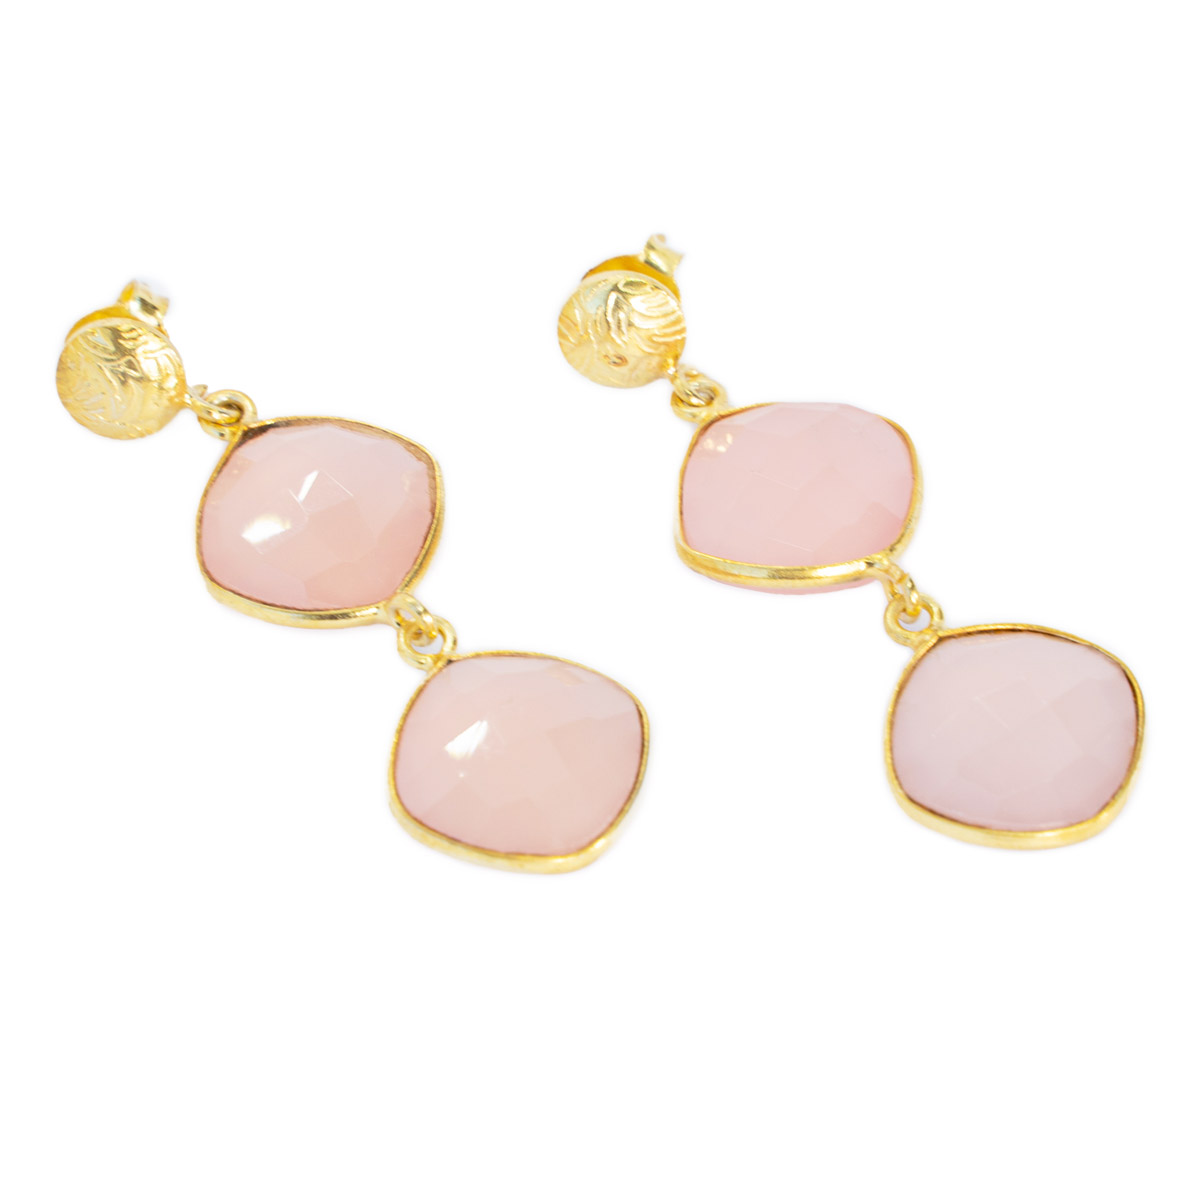 Sri Avinash Infused™ Pink Chalcedony Earrings - Divine Blessings Infusion